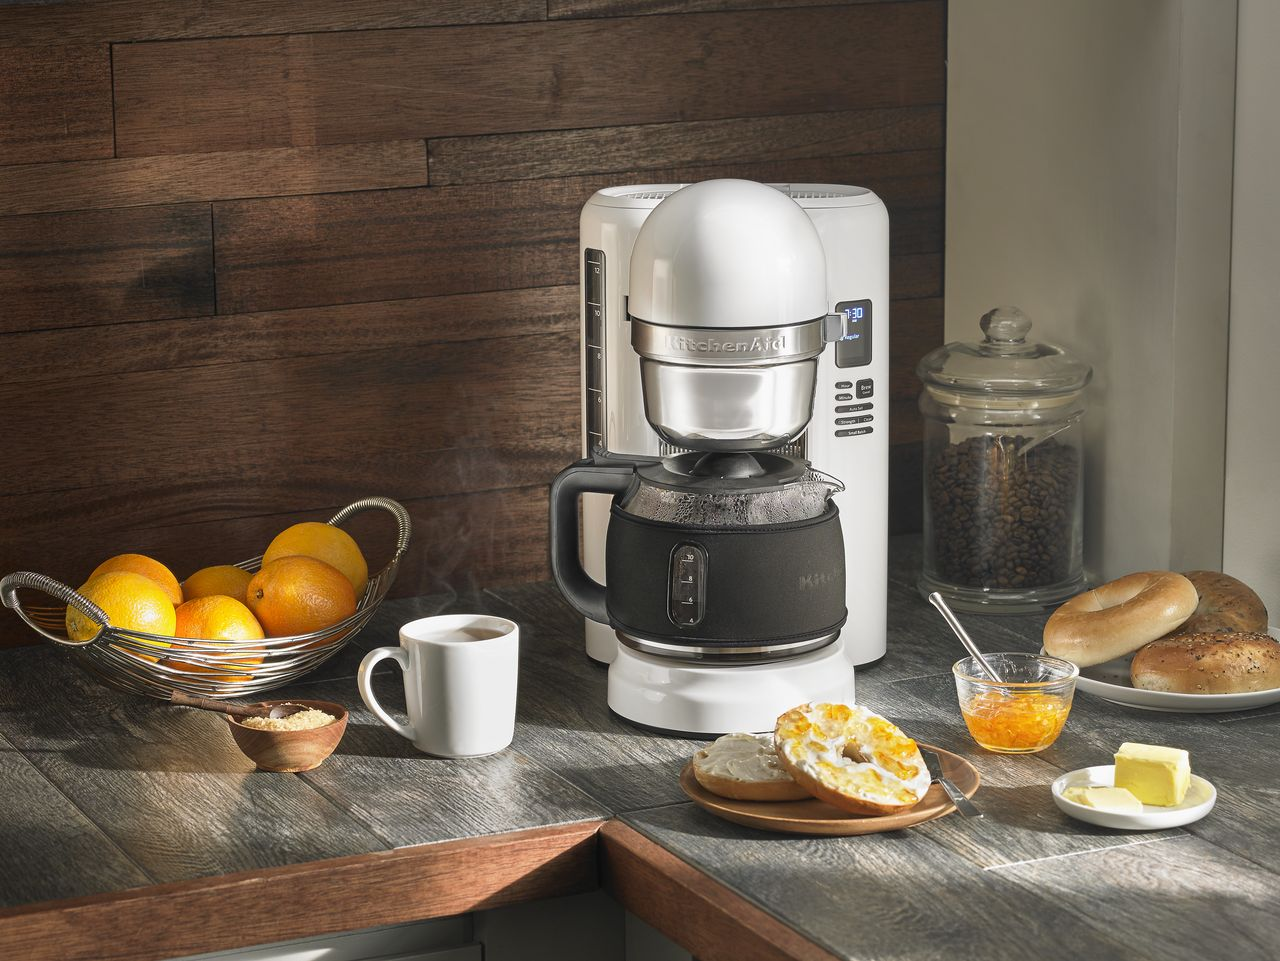 Brunch Time with KitchenAid Appliances